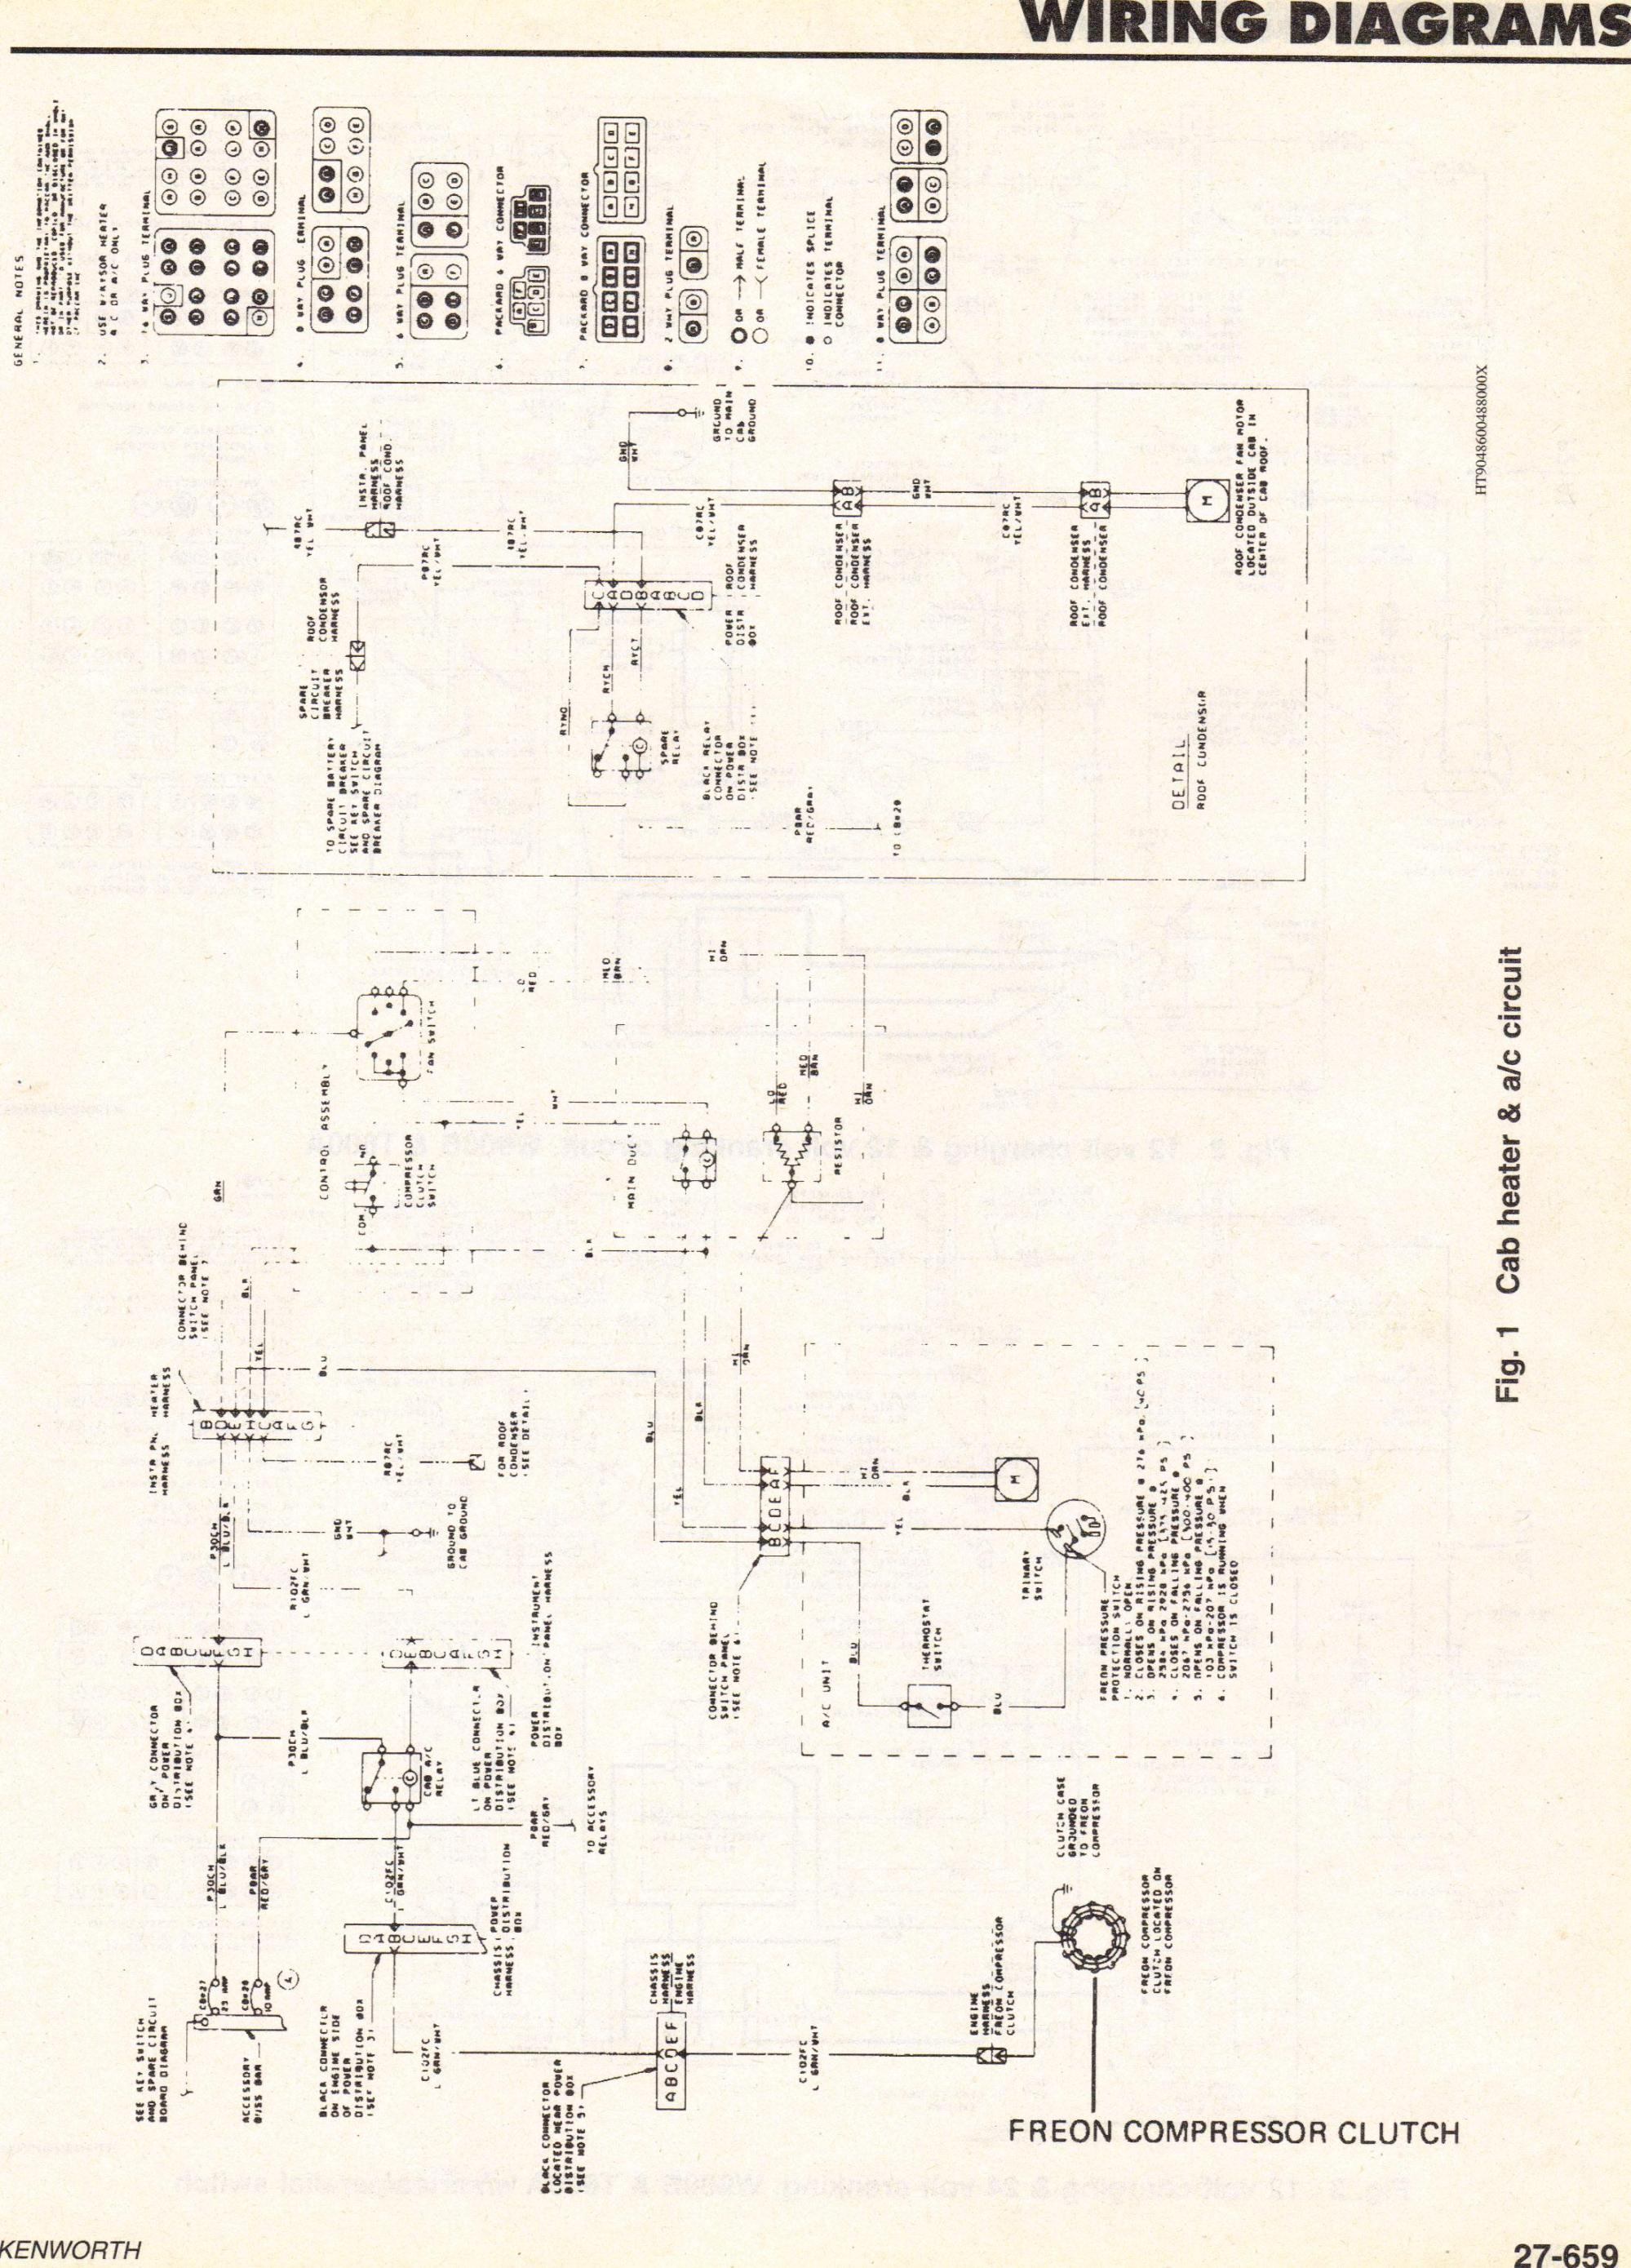 hight resolution of trinary wiring diagram